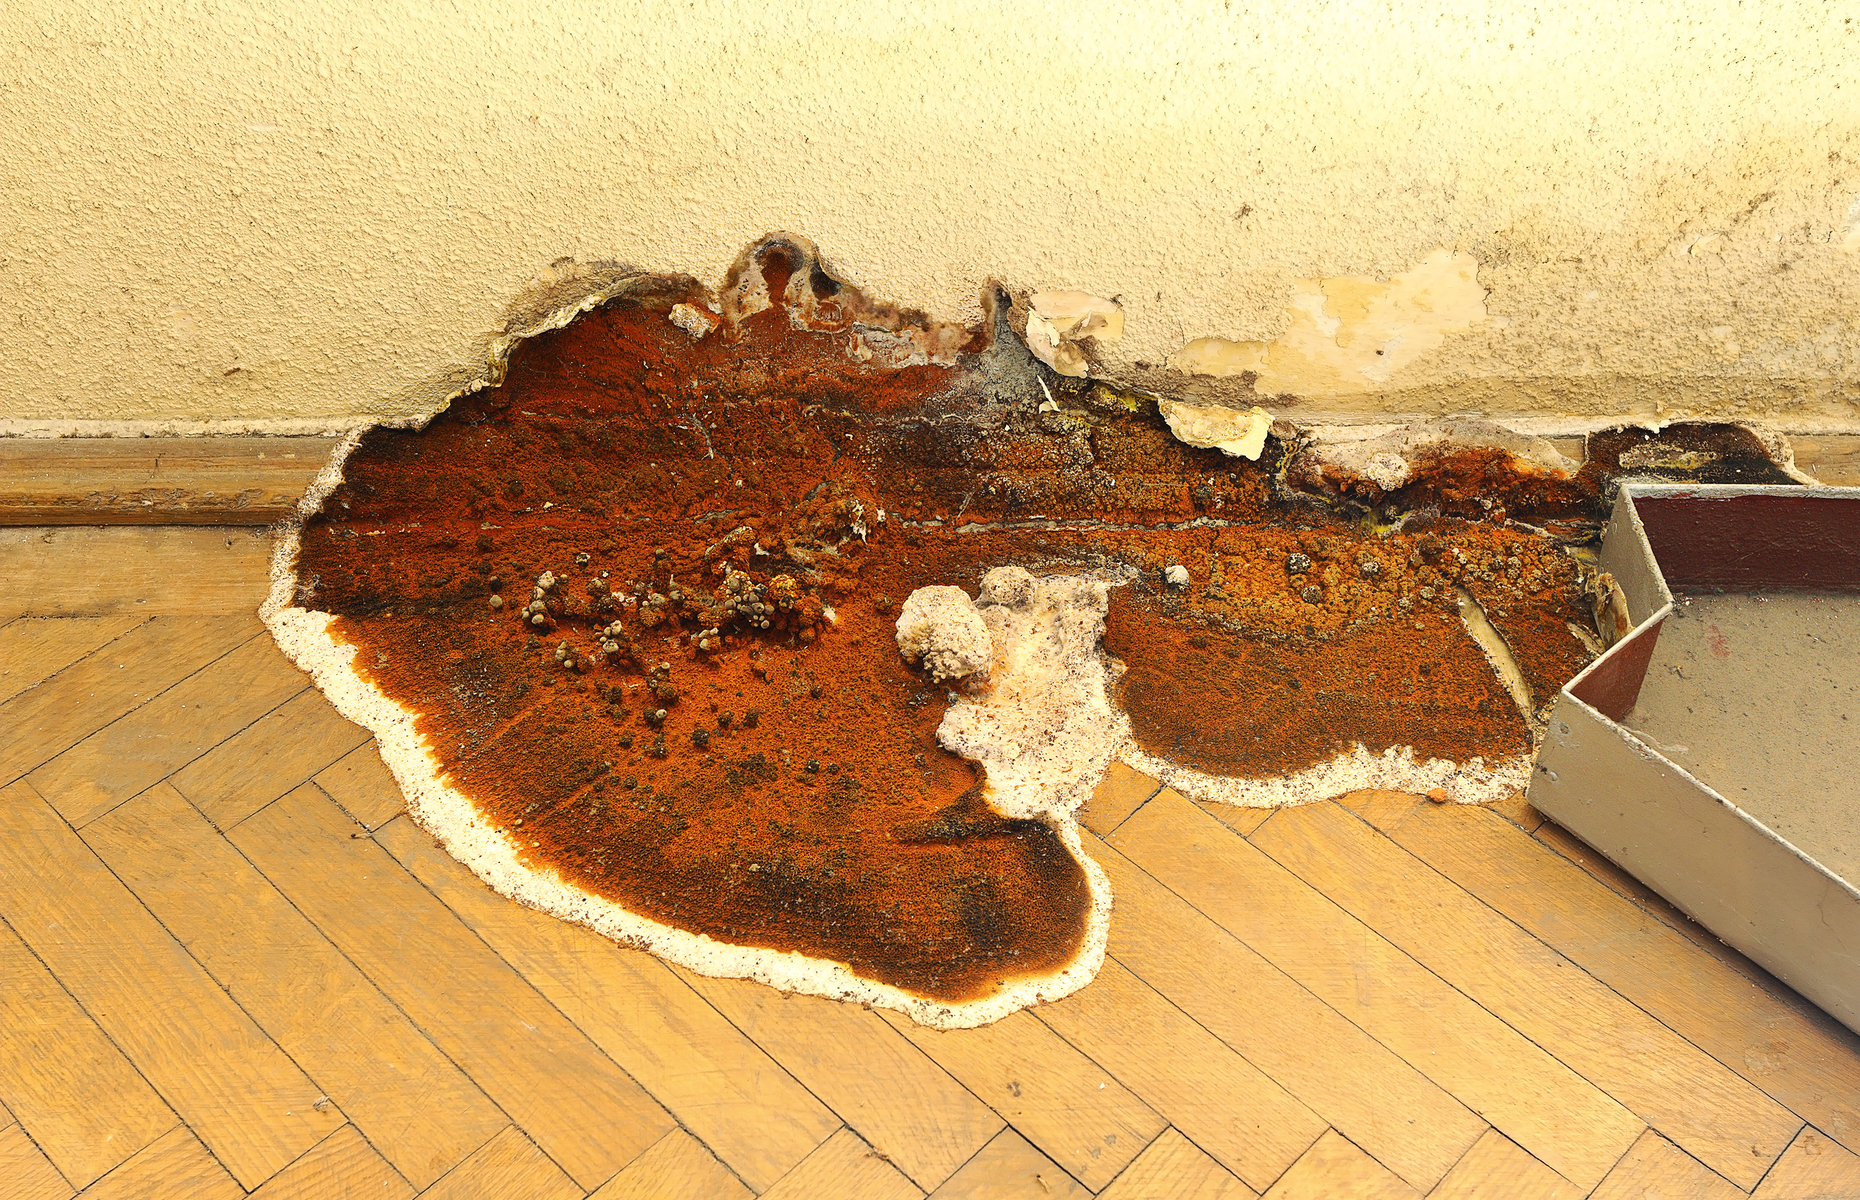 Wood affected by dry rot can feature white and rusty patches. Image: taviphoto/Shutterstock